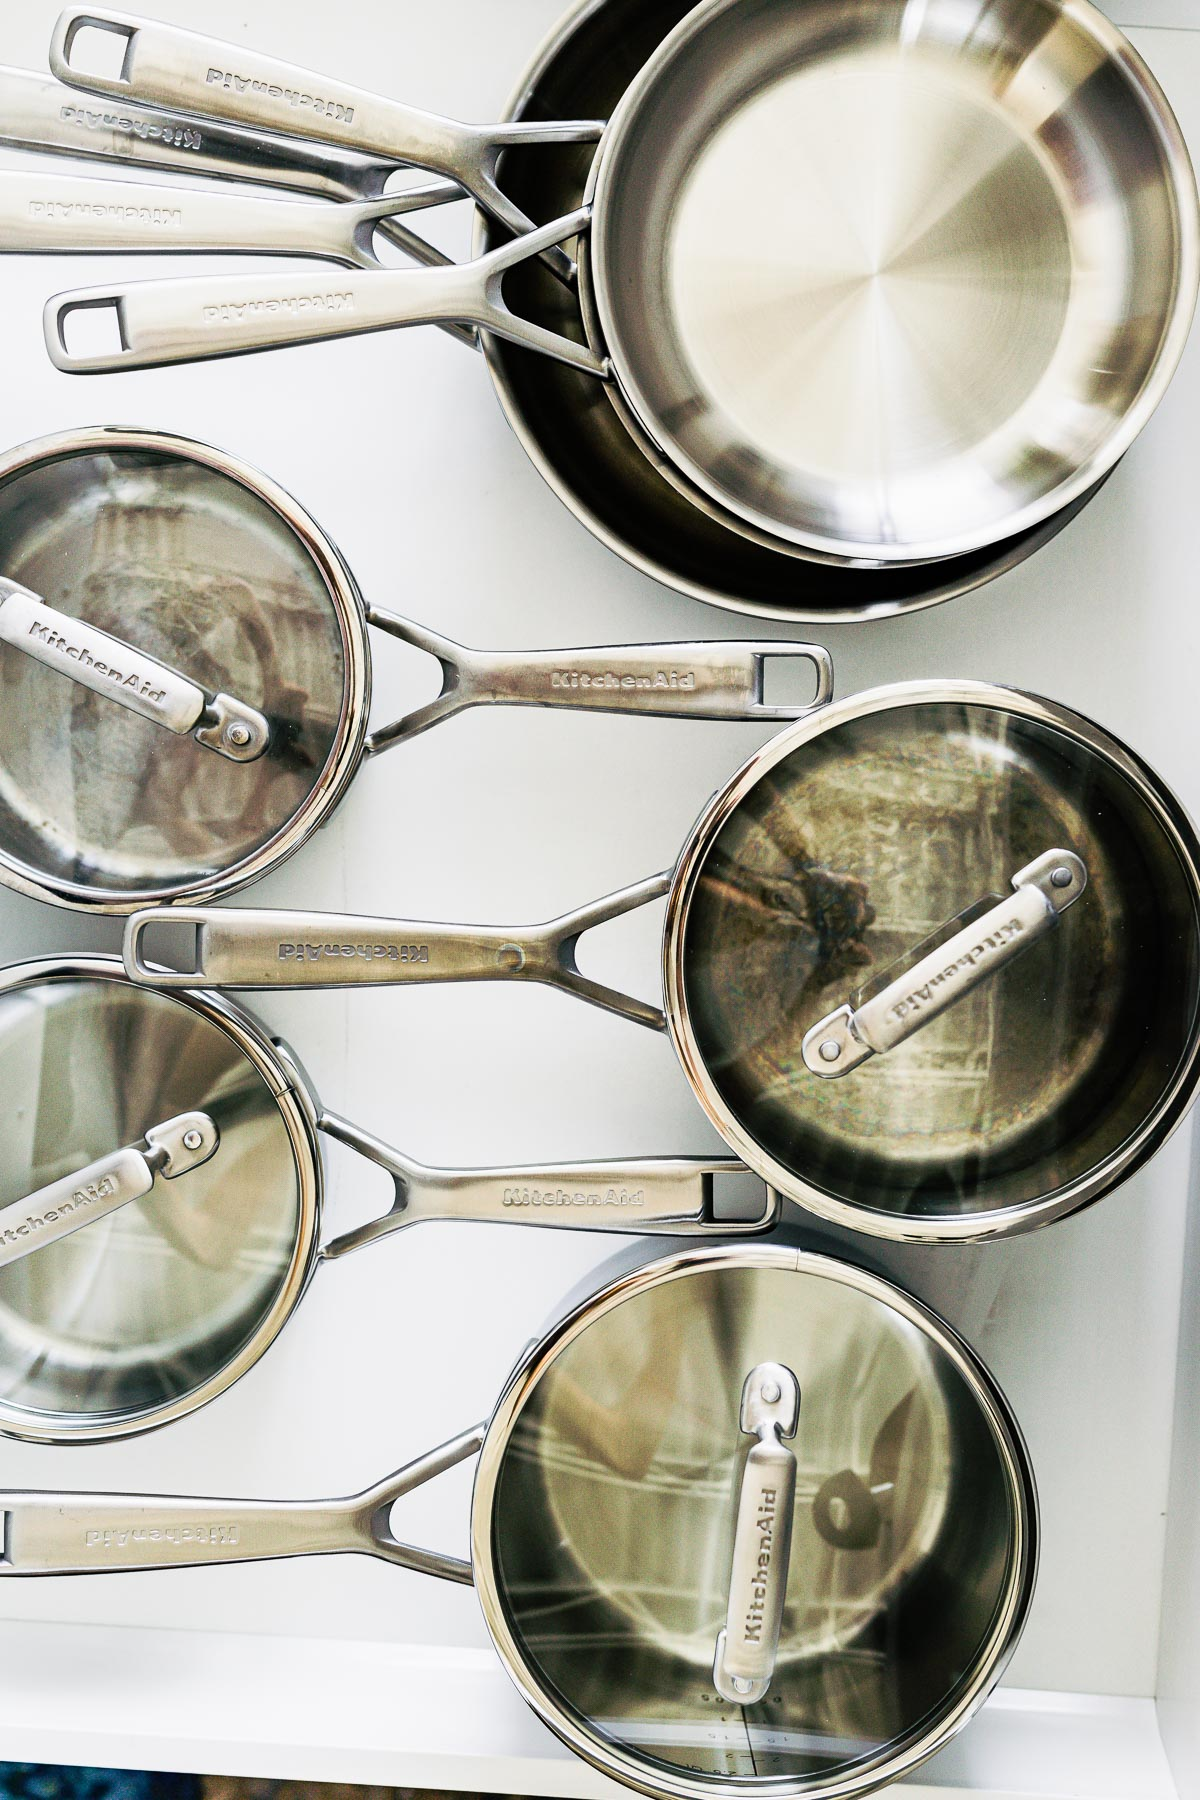 kitchenaid pots and pans